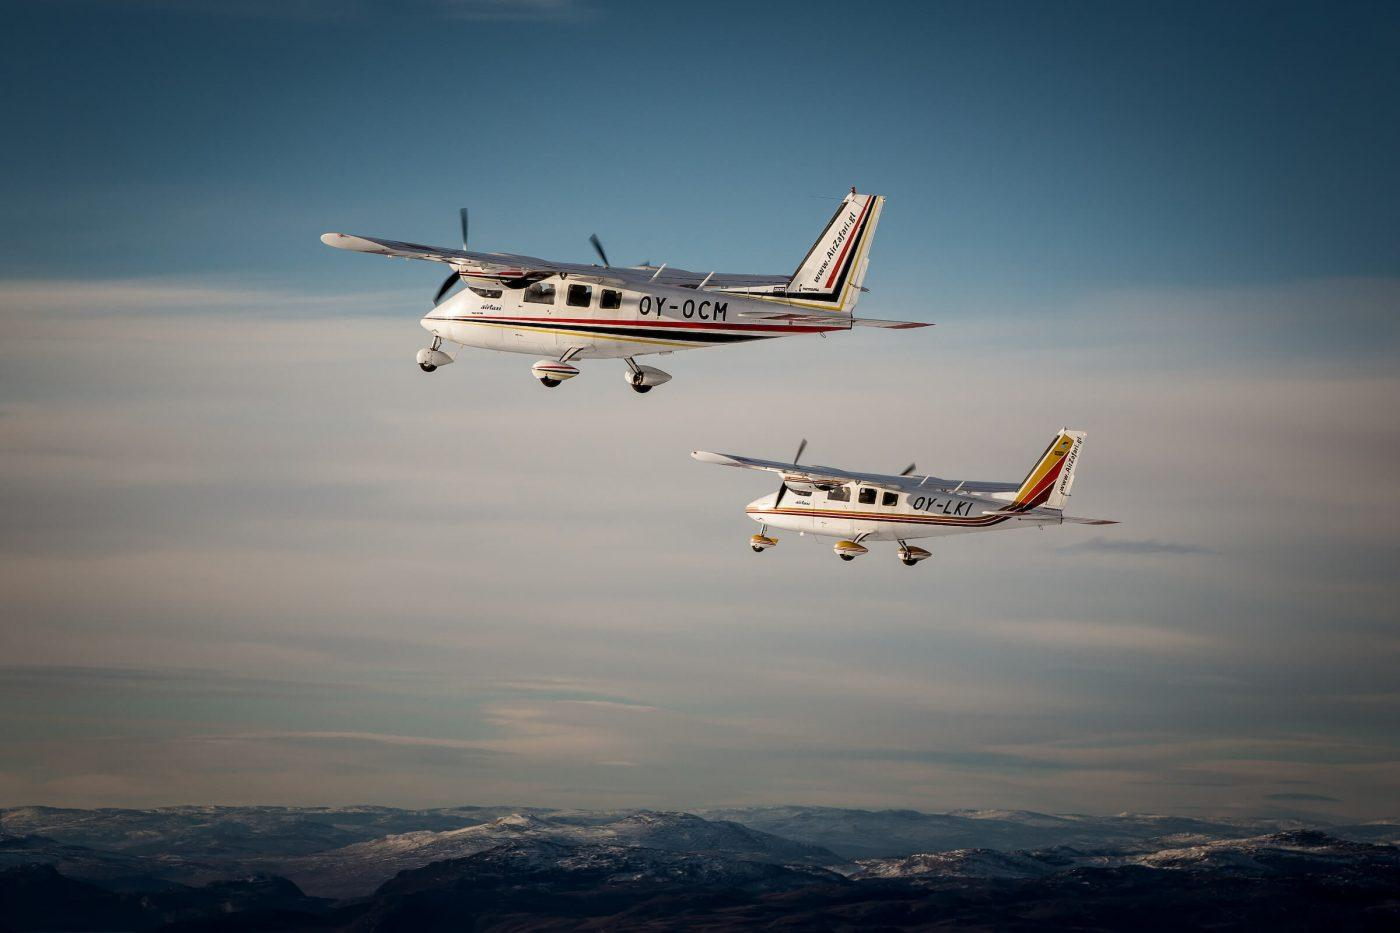 Two flightseeing planes from Air Zafari over the hills around Kangerlussuaq in Greenland. Photo by Mads Pihl